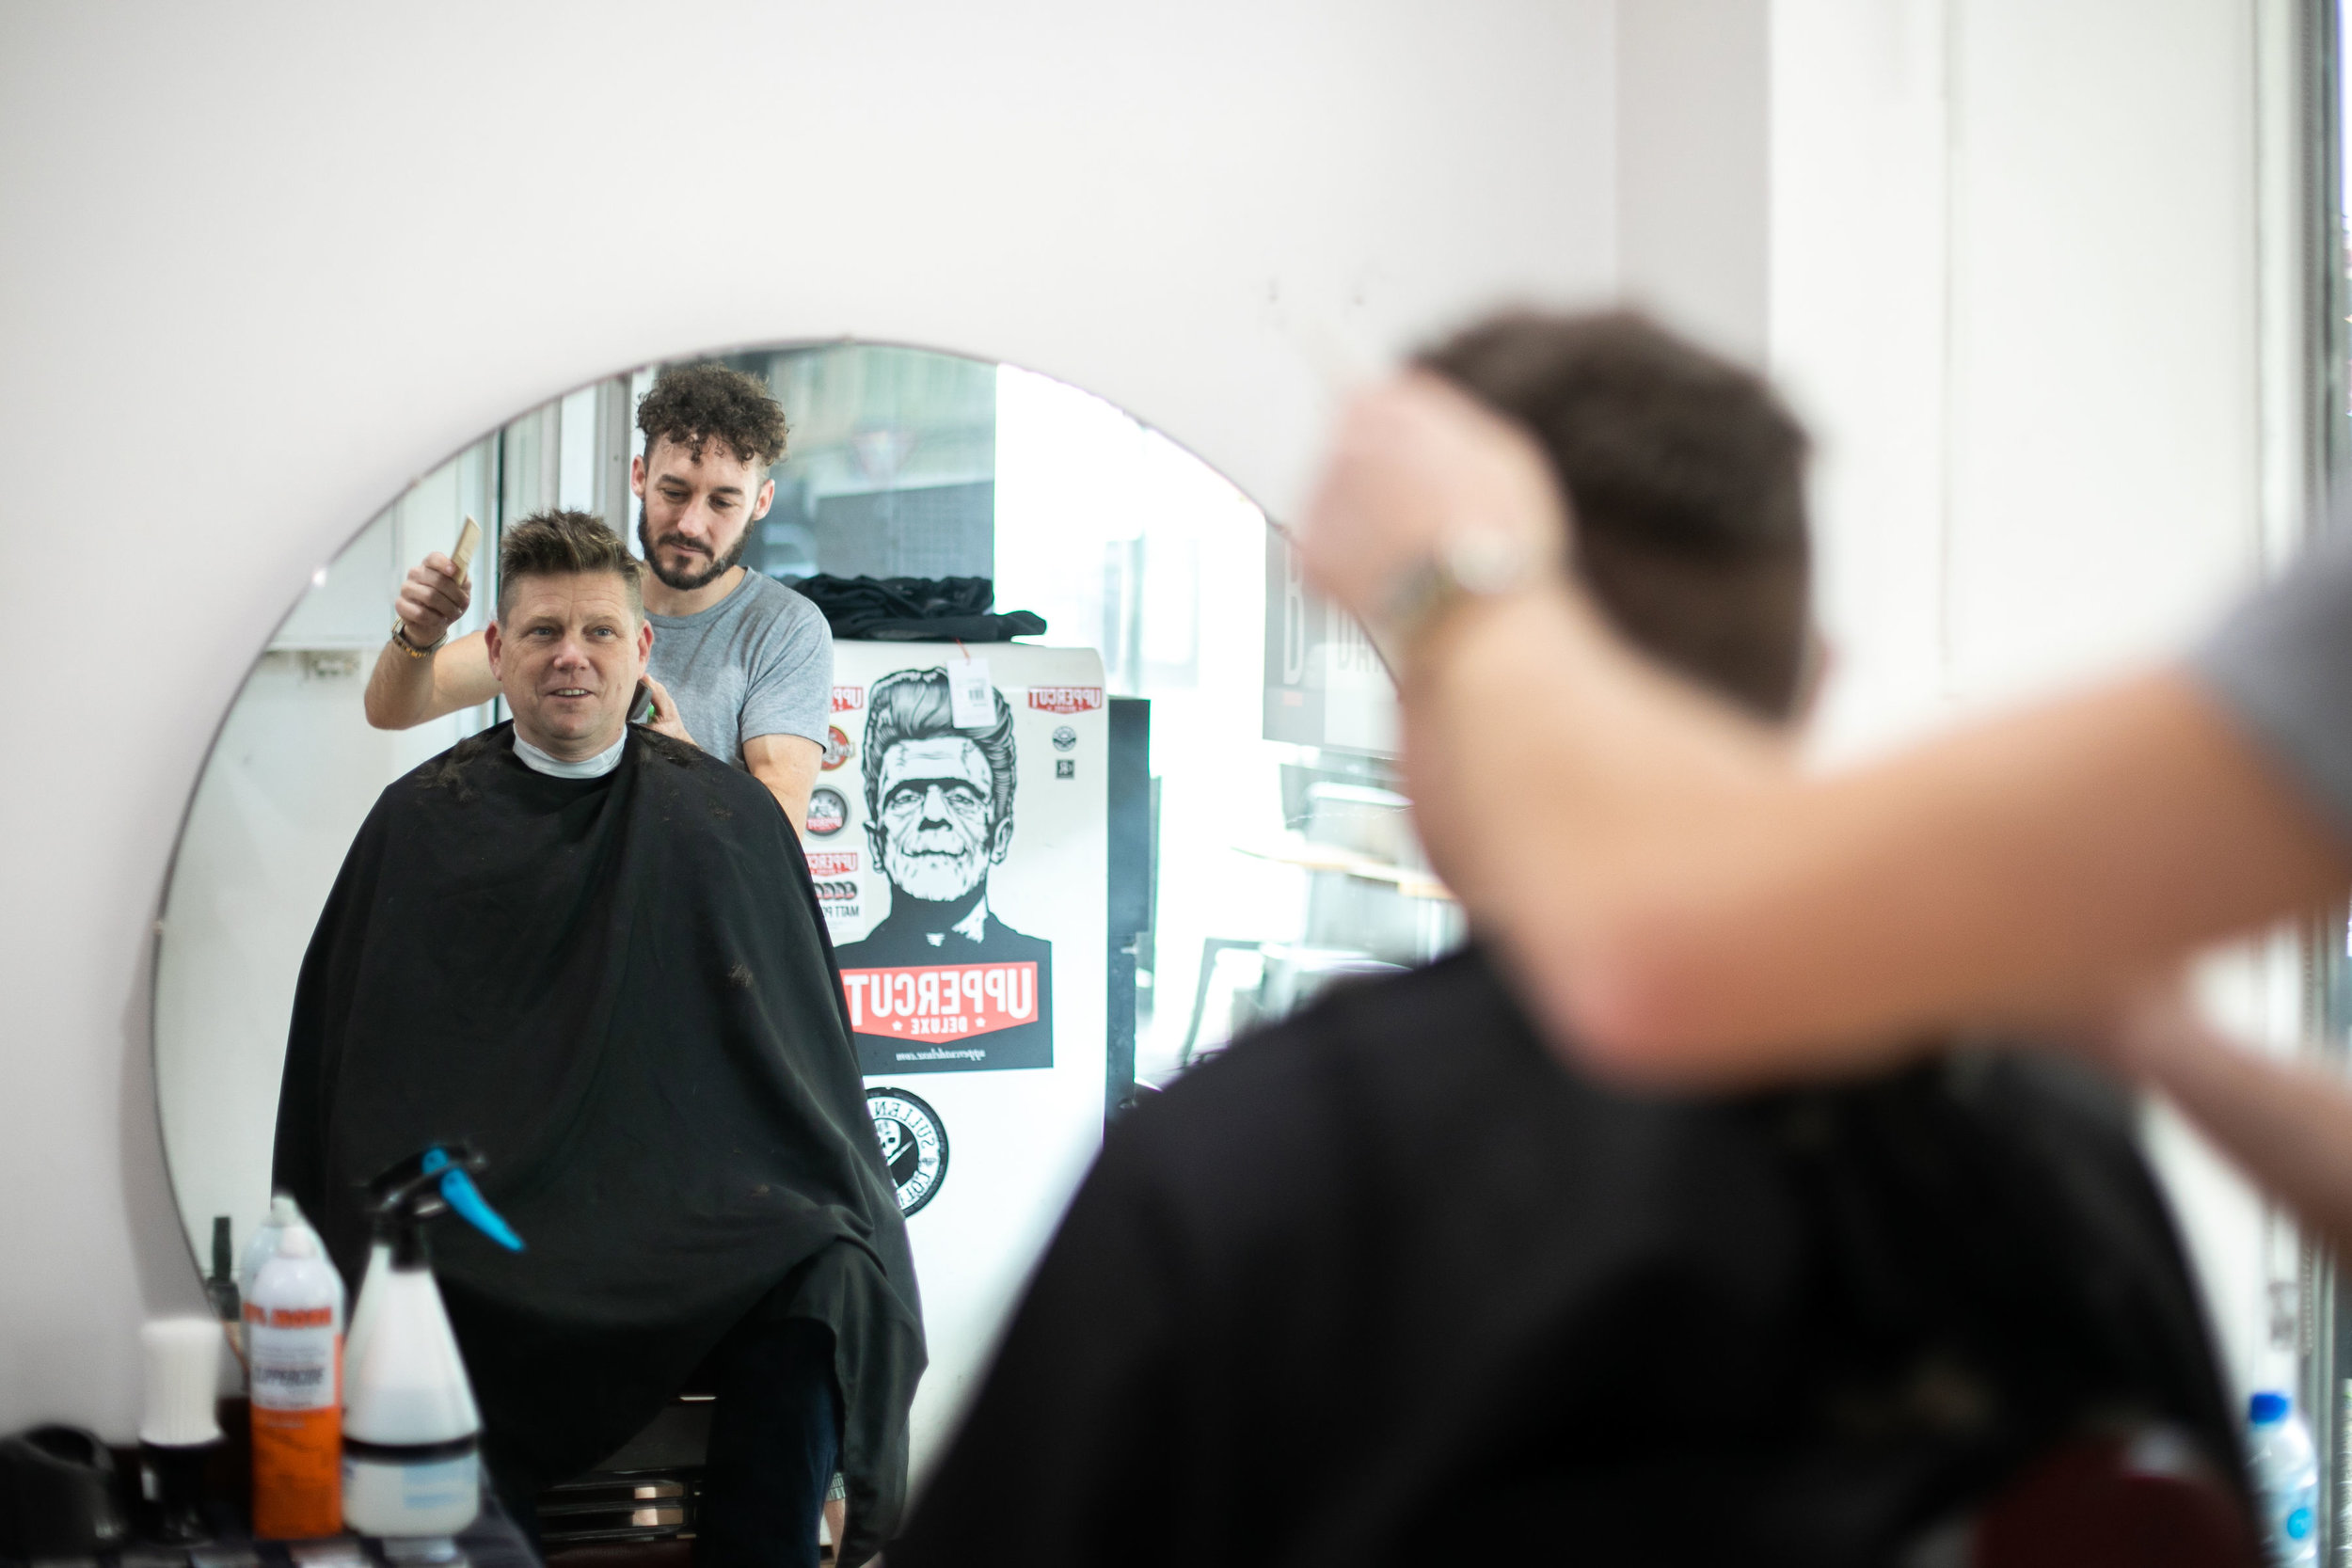 Hamish doing what he does best, mens haircuts. Image: Melanie de Ruyter for Winterlicous 2019.